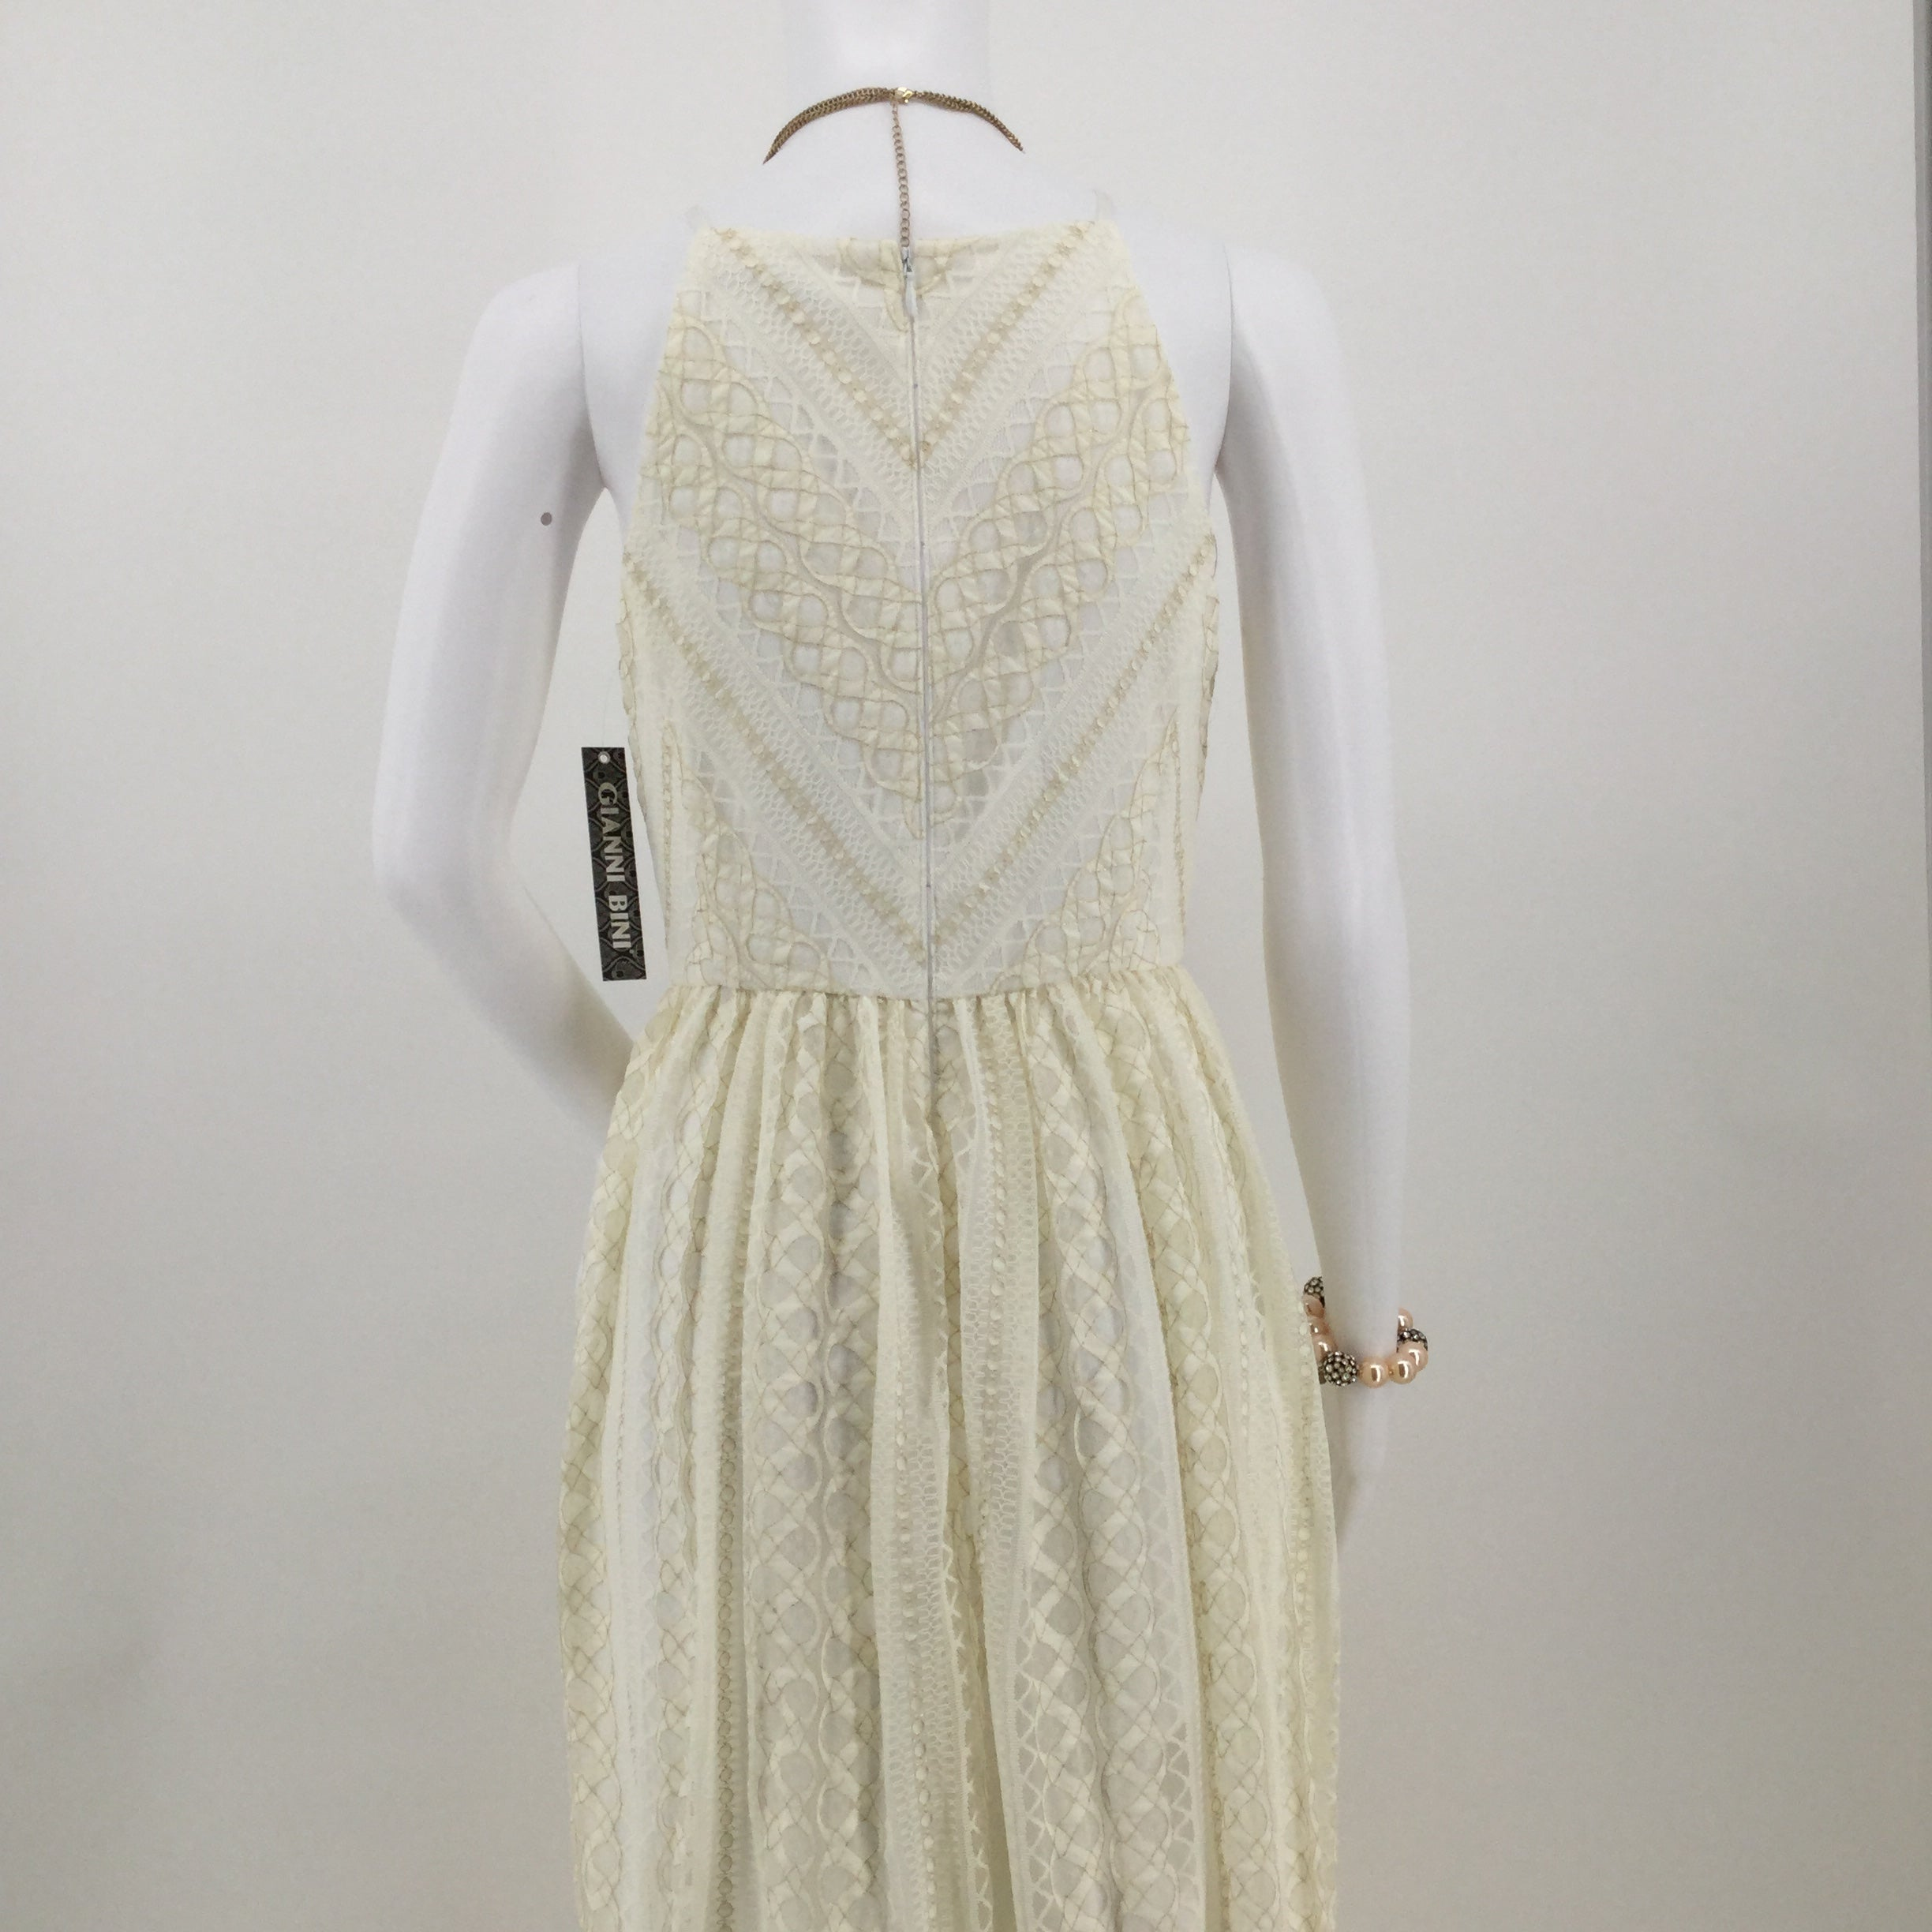 APPAREL,DRESSWEAR - SLEEVELESS, BOAT NECK DRESS IN CREAM COLORED LACE WITH GOLD ACCENTS. NEW WITH TAGS. 58